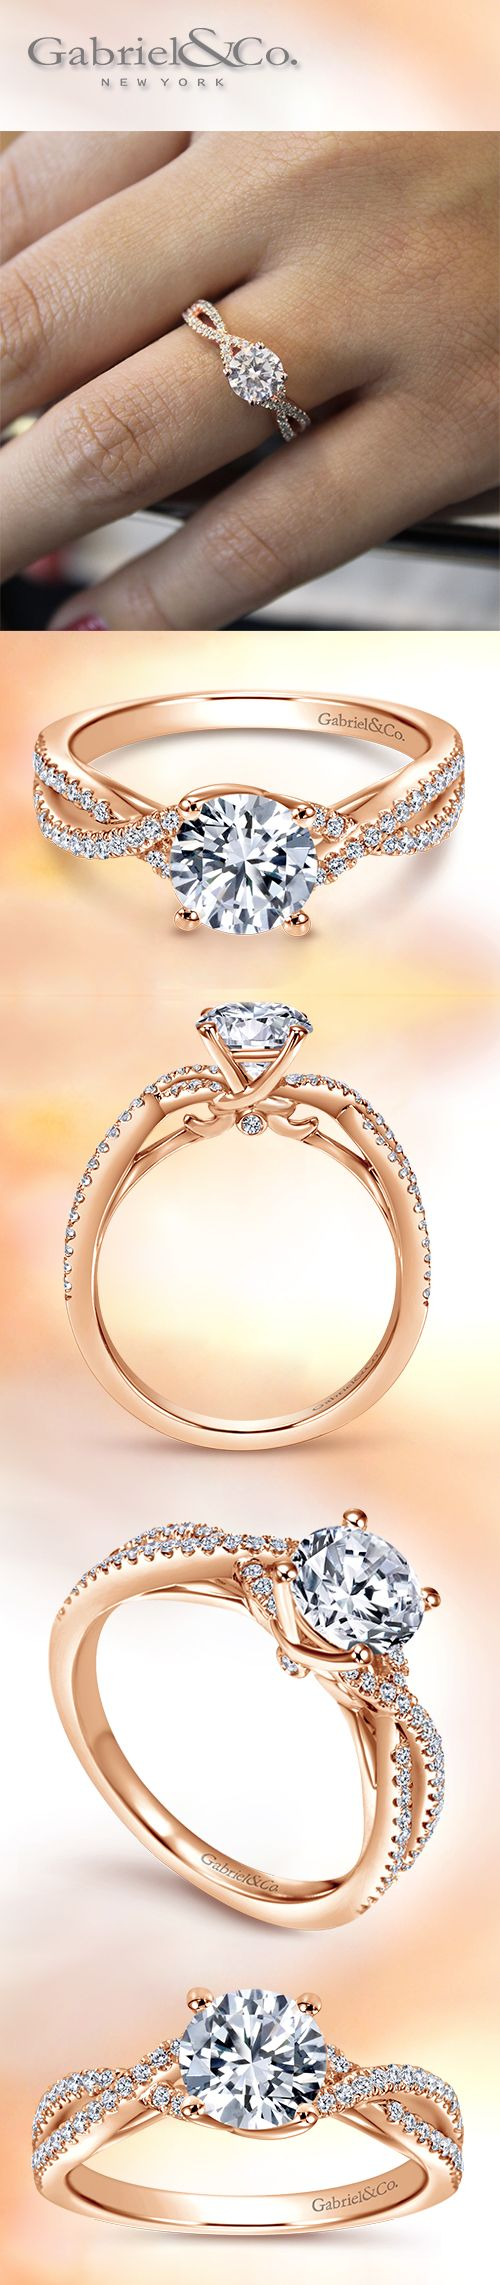 Gabriel & Co. - A contemporary 14k Pink Gold Round-Cut Diamond Engagement Ring encrusted with pav� diamonds on its twisted design.